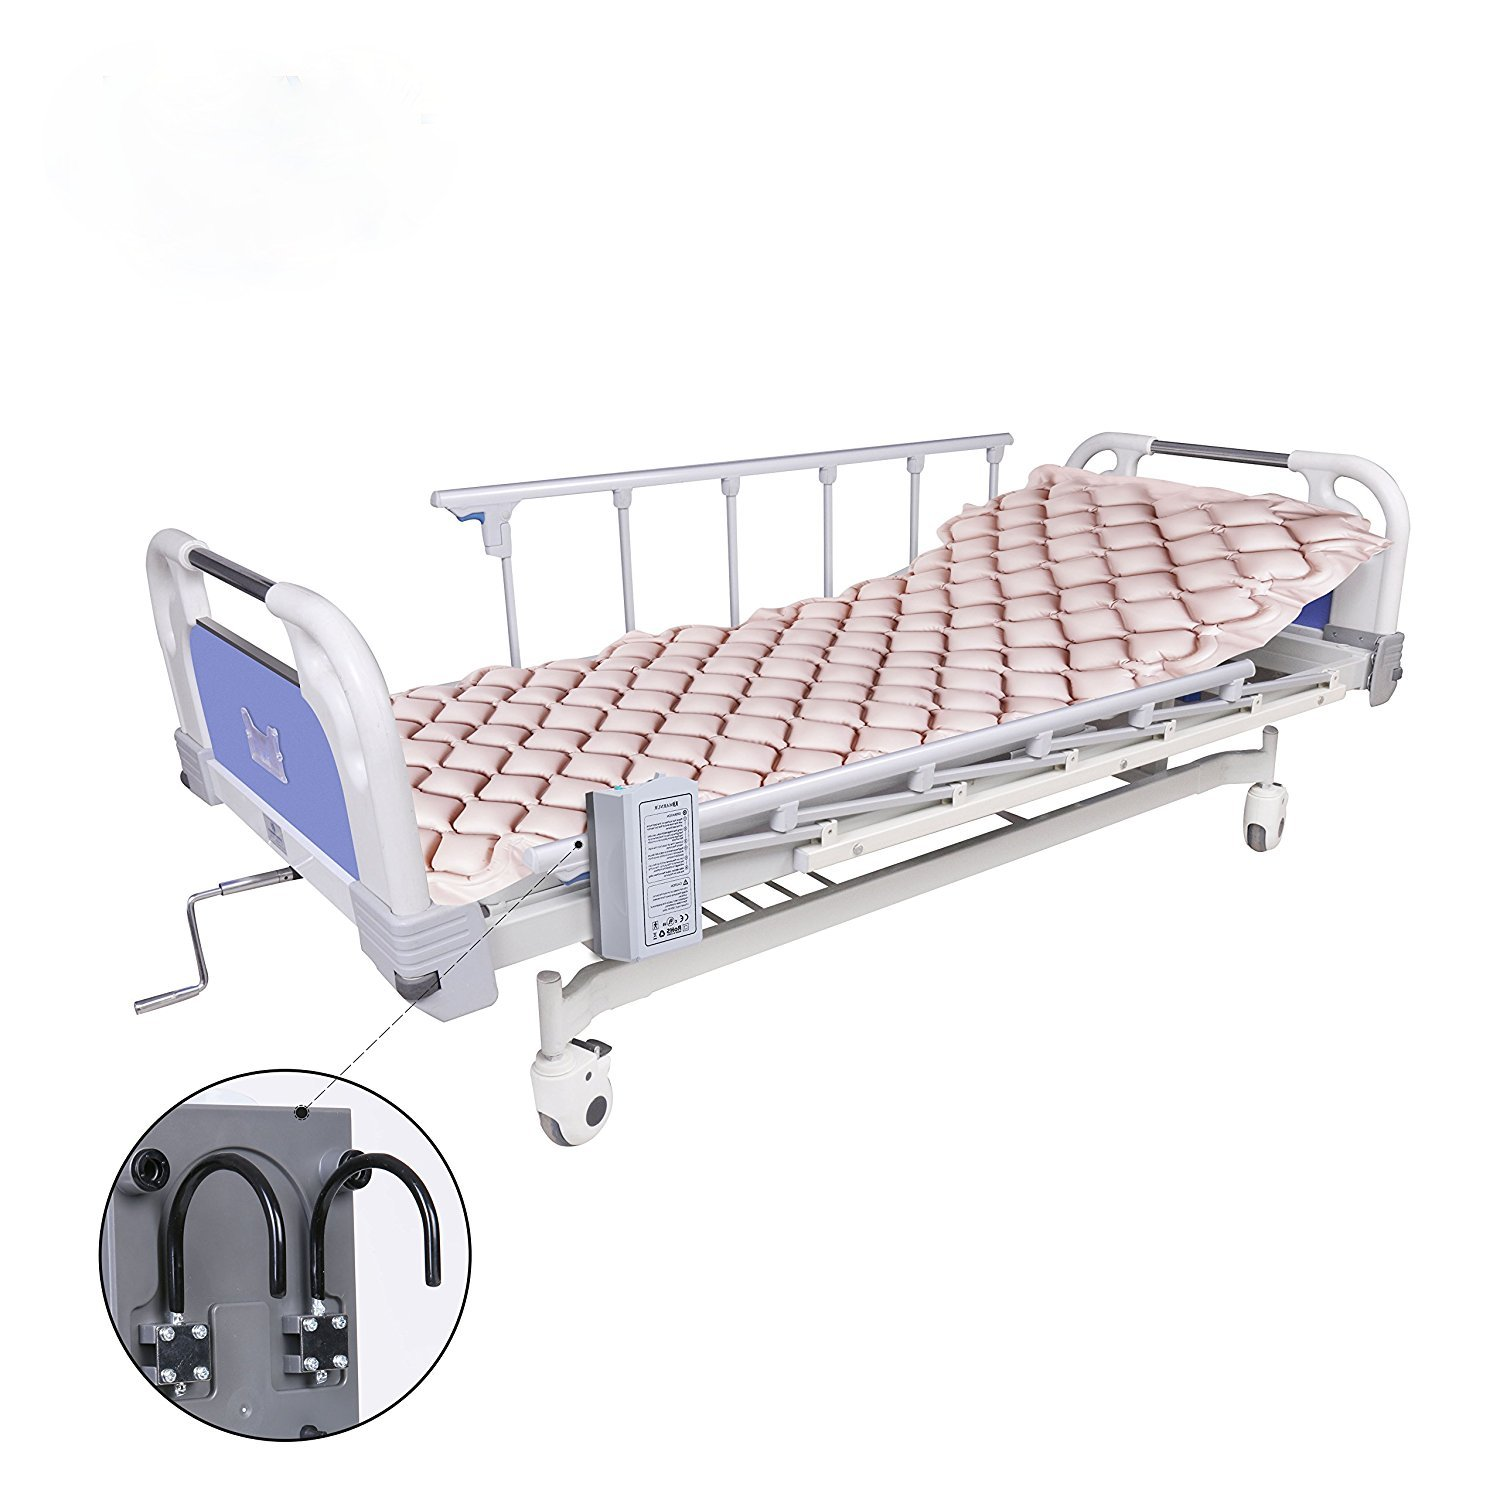 Alternating Pressure Mattress by Dr.Onic - Includes Electric Pump & Mattress Pad - Inflatable Bed Pad for Pressure Ulcer and Pressure Sore Treatment ISO CE Product